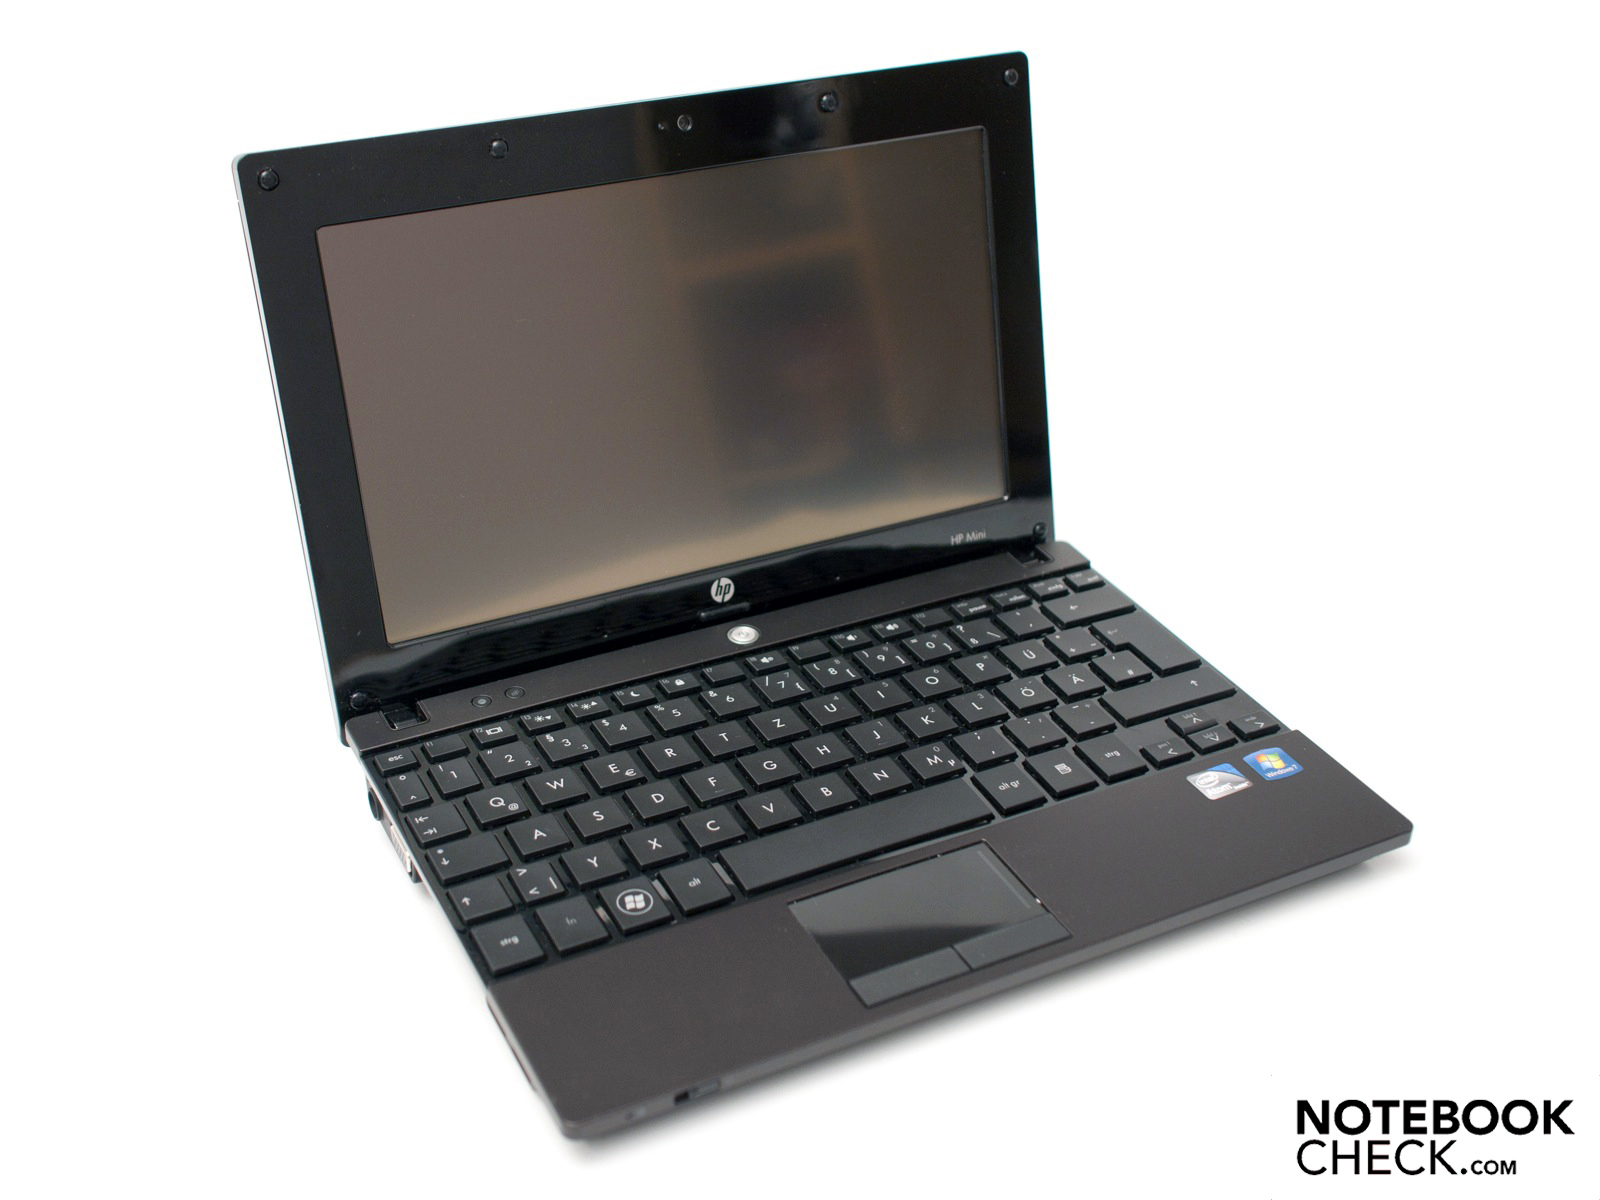 review hp mini 5103 netbook notebookcheck net reviews rh notebookcheck net hp mini 5103 manual pdf HP Mini 5102